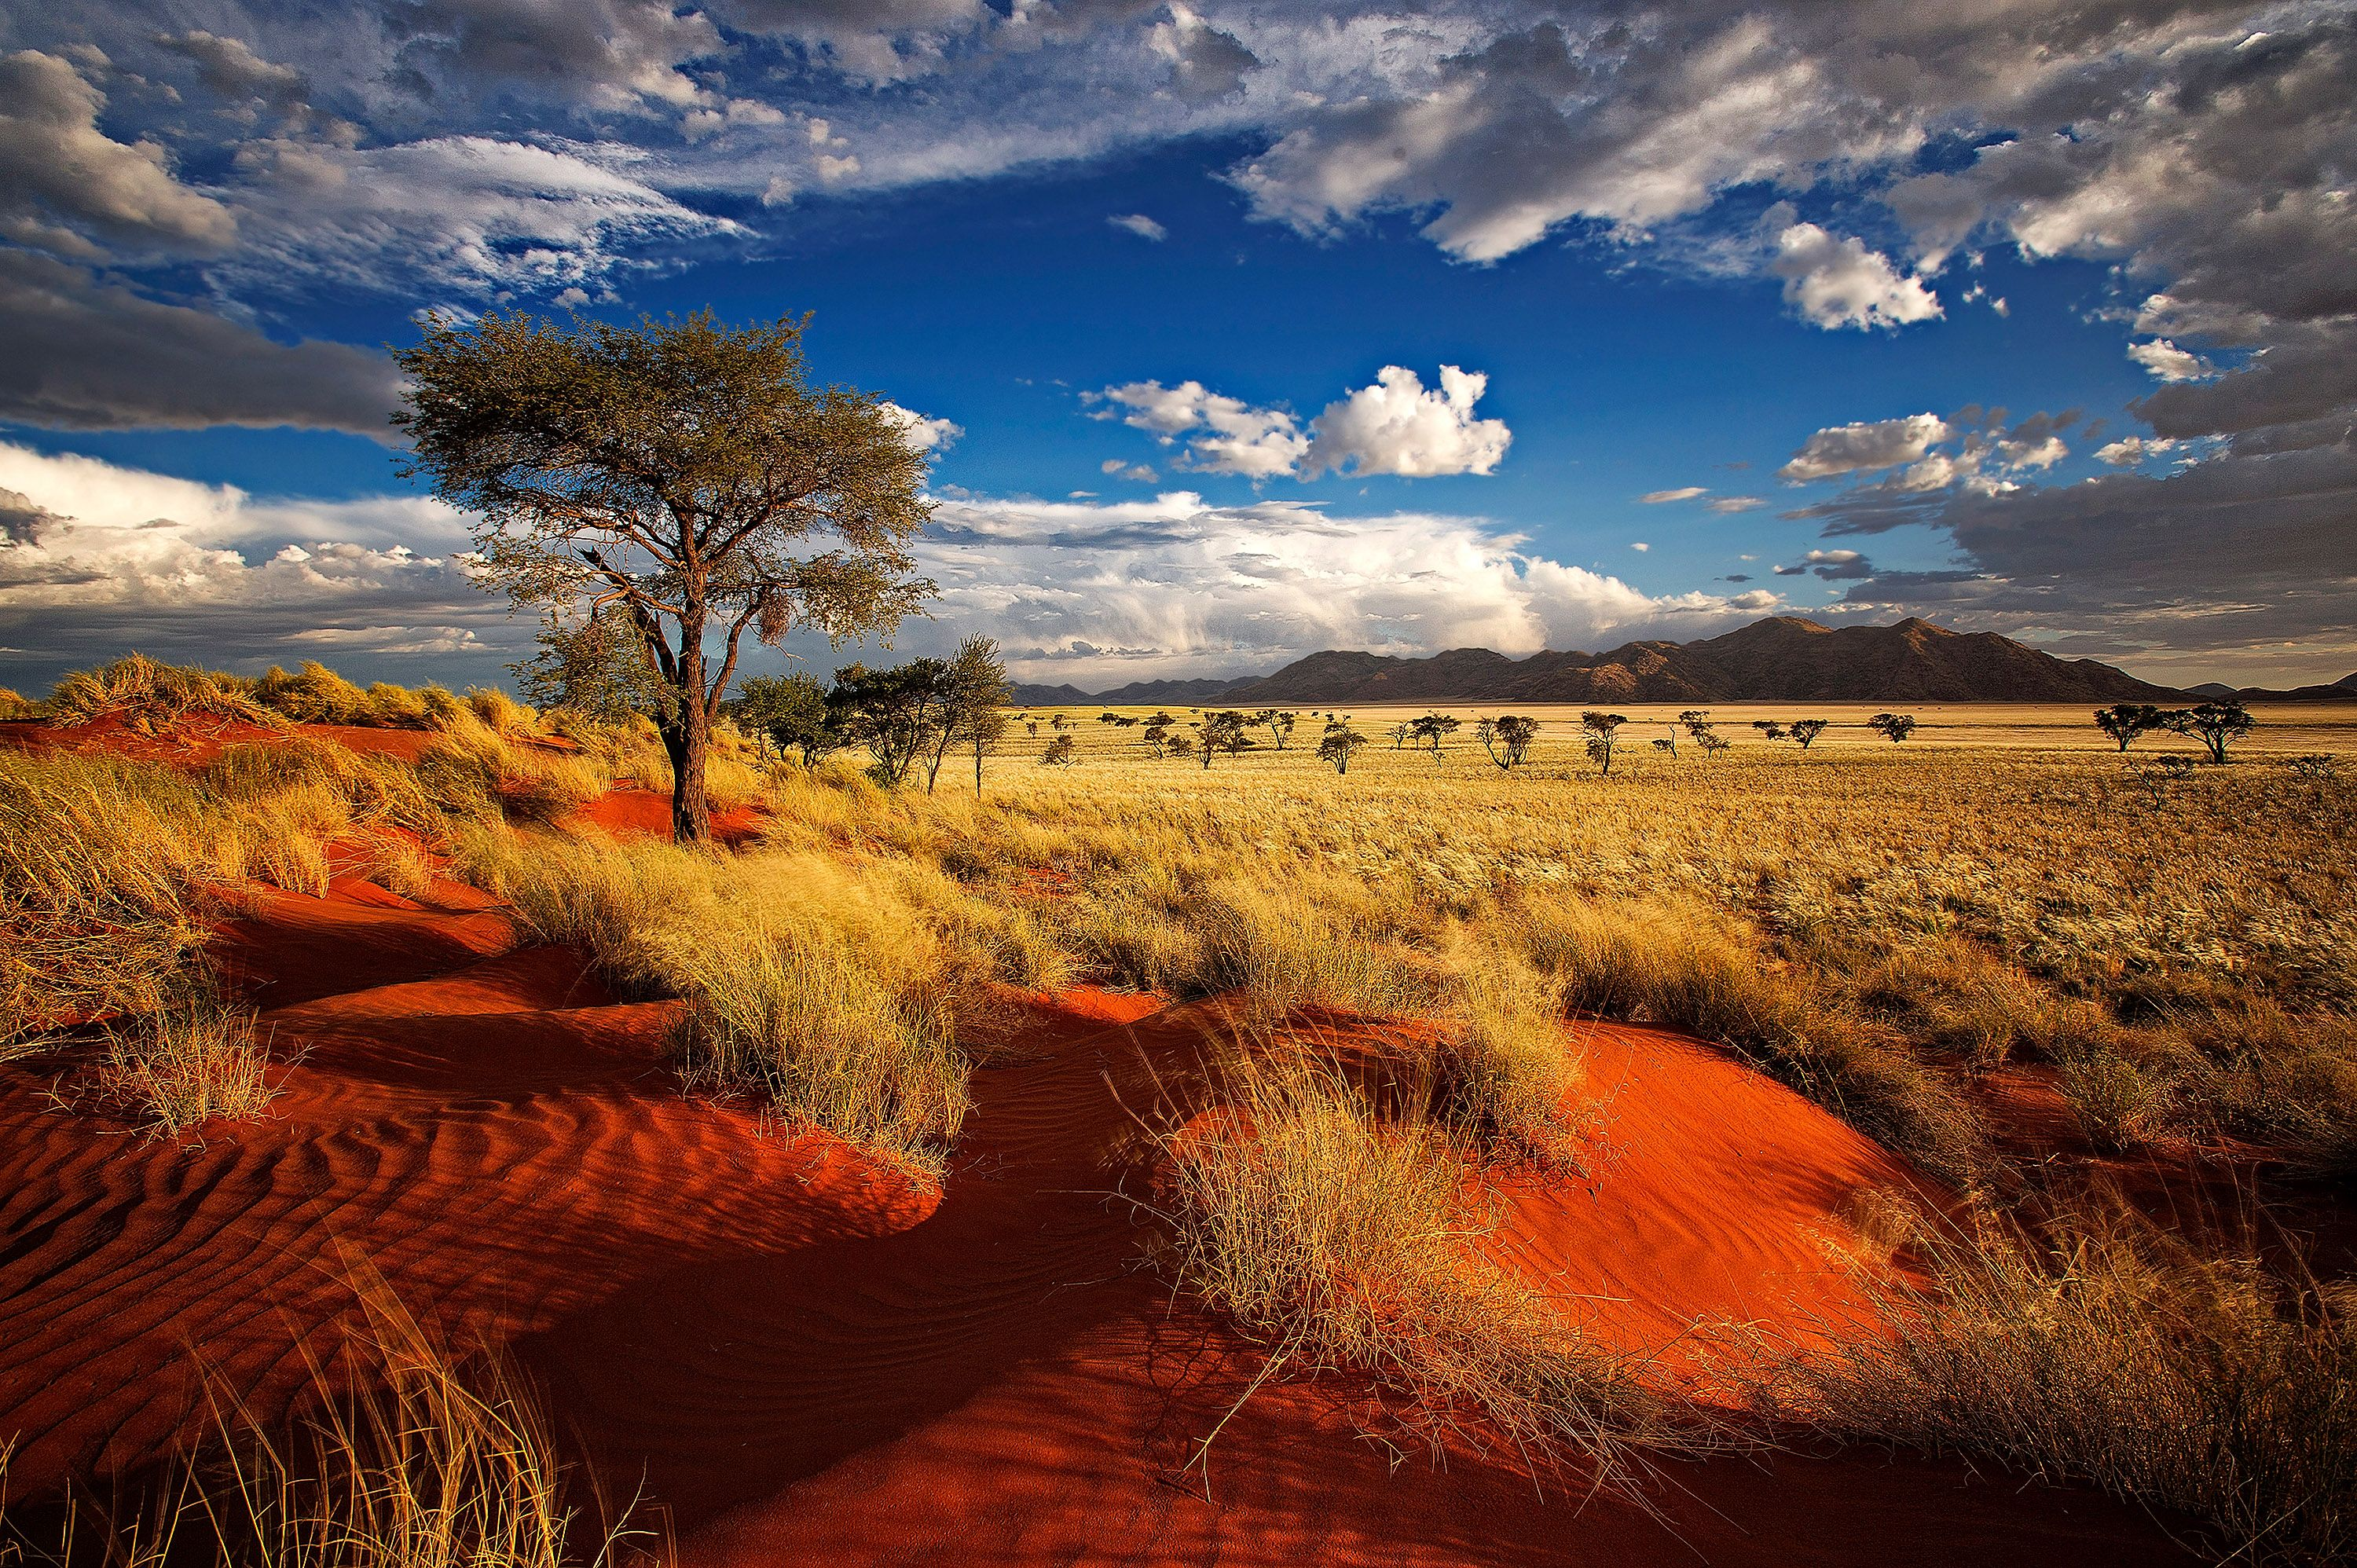 3000x1996px Widescreen wallpaper of Namibia 9 #1452499059